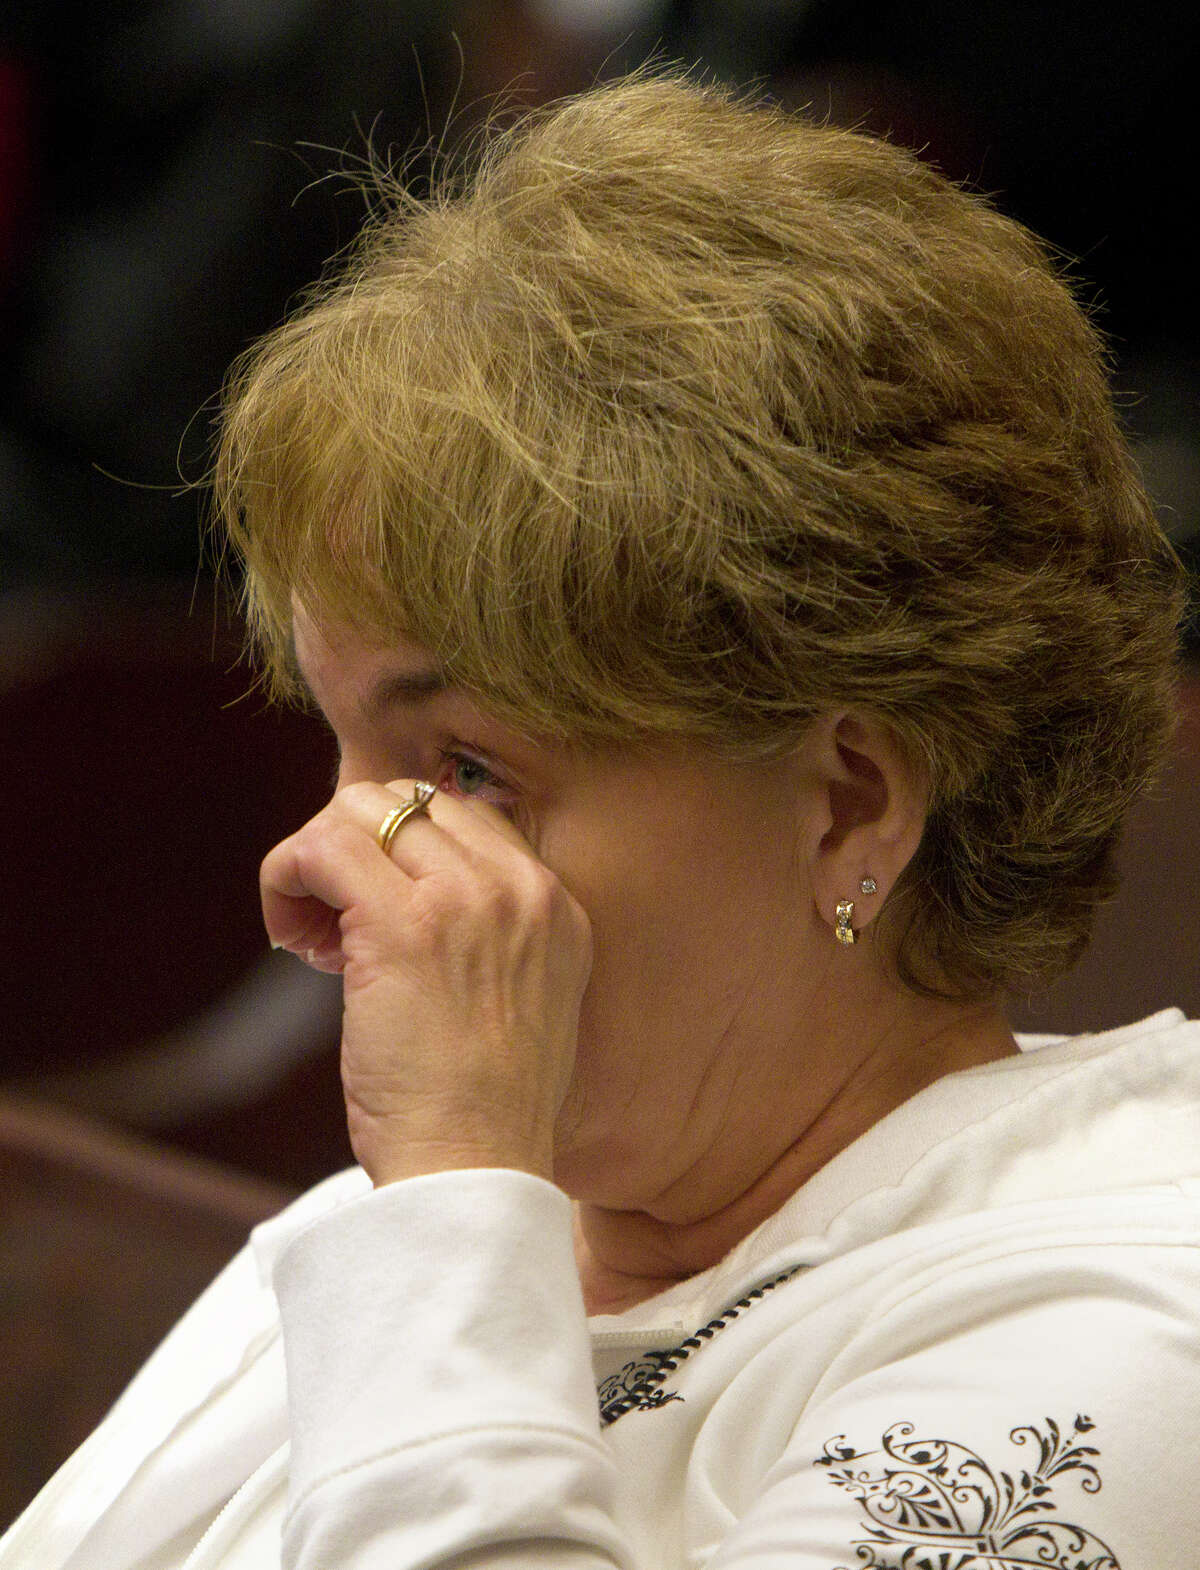 Patty Sparks wipes her eye after Jessica Tata was sentenced to 80 years in prison Tuesday, Nov. 20, 2012, in Houston. Tata was sentenced after a Feb. 24, 2011 home day care fire killed four toddlers. (Cody Duty / Houston Chronicle) I was satisfied to hear the amount of years,